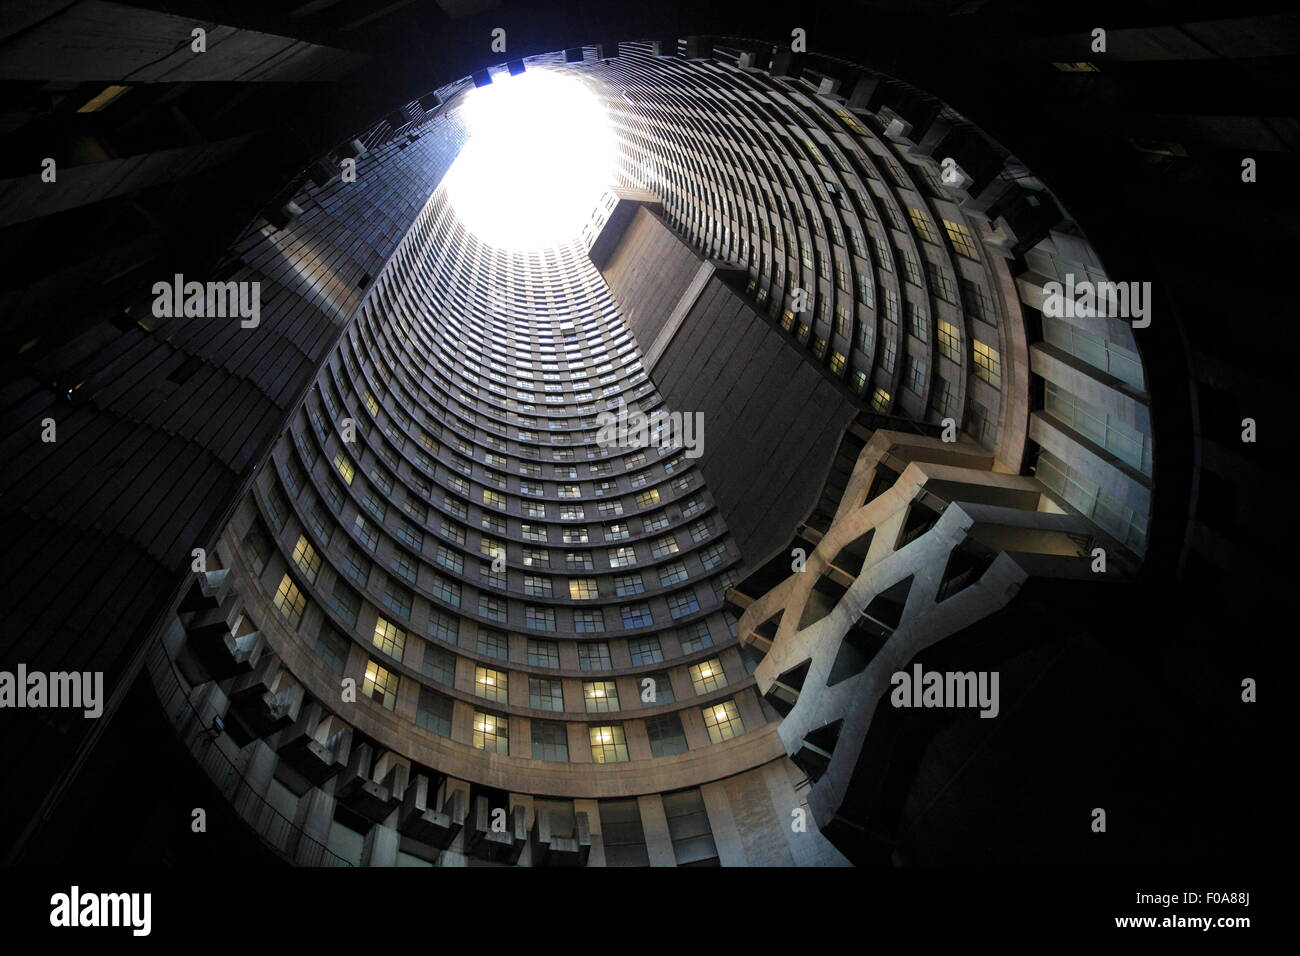 South Africa, Johannesburg. Hillbrow. Tour of Ponte Tower from inside. - Stock Image